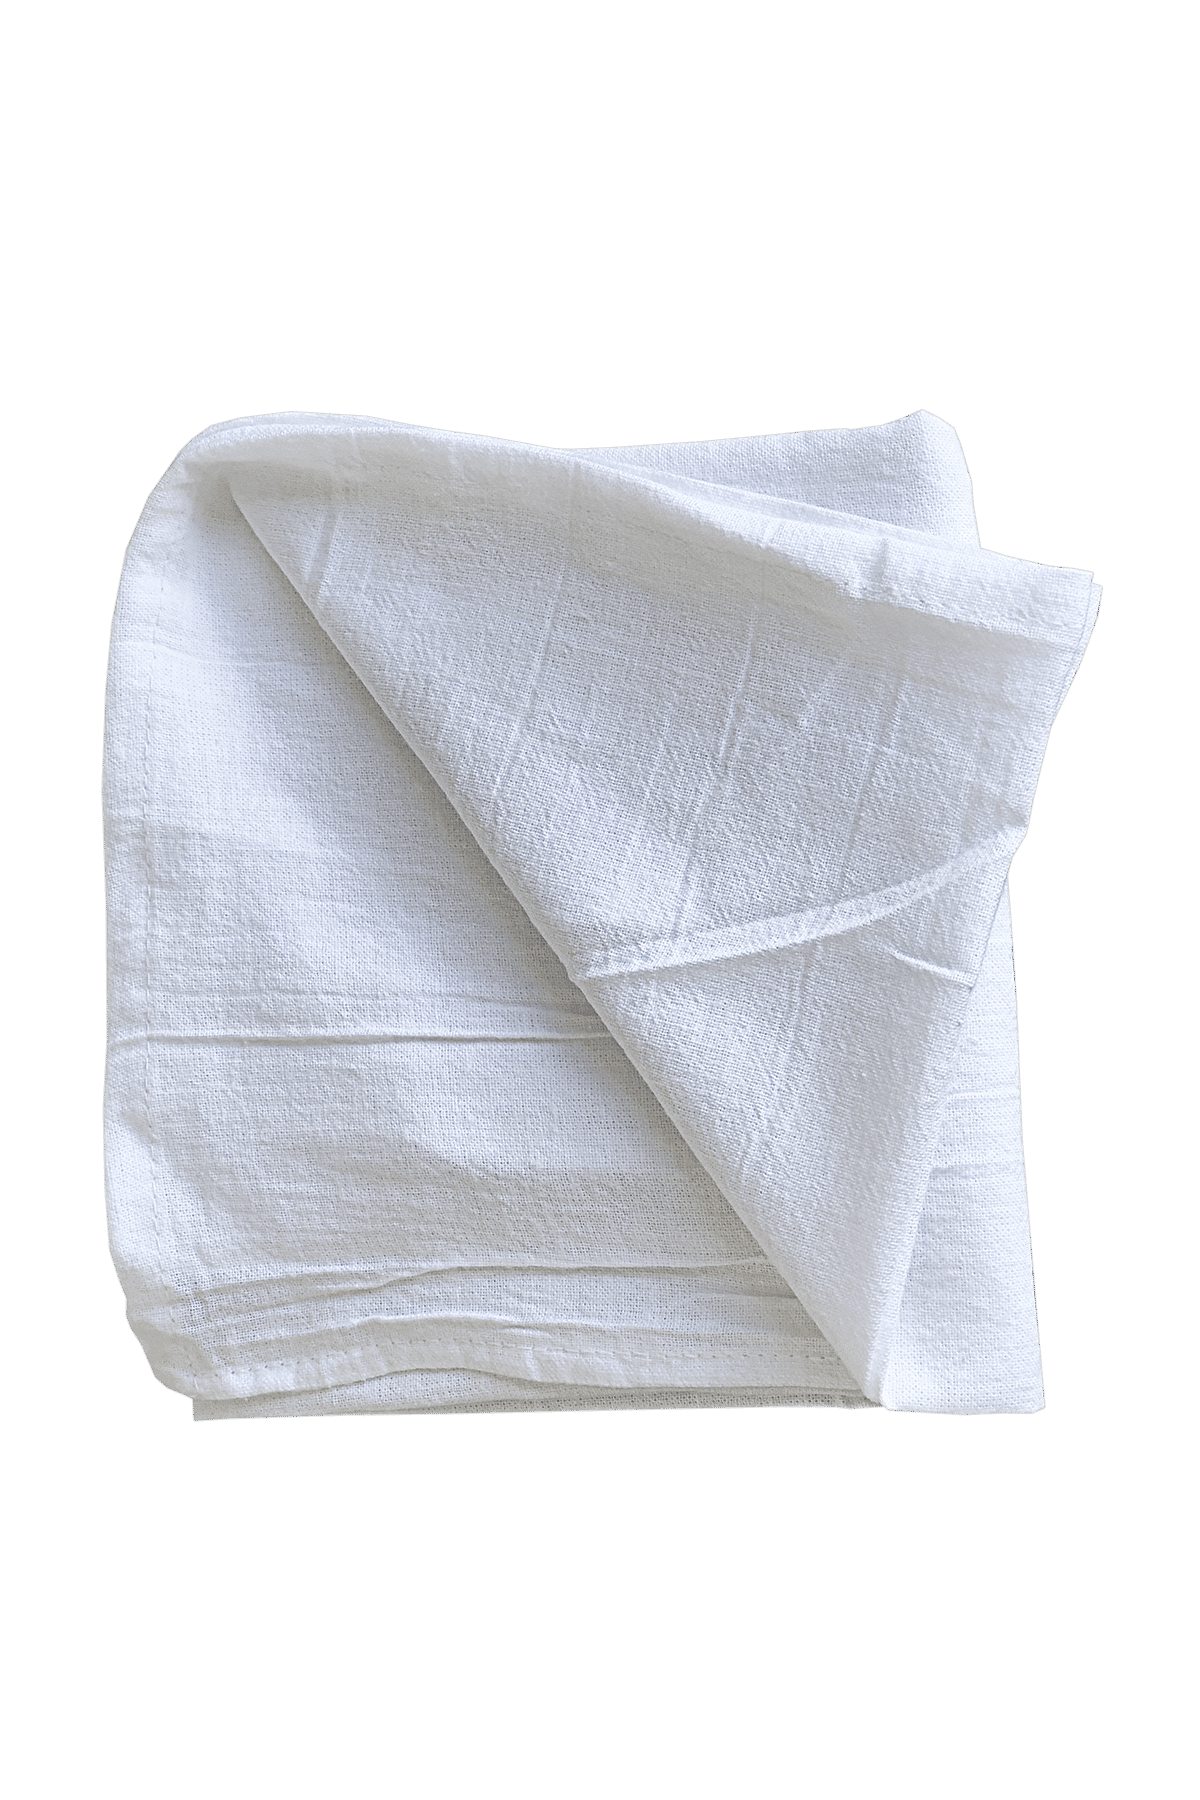 White & Natural Flour Sack Towels, Sample Pack 28 x 29 Inches, 100% Cotton